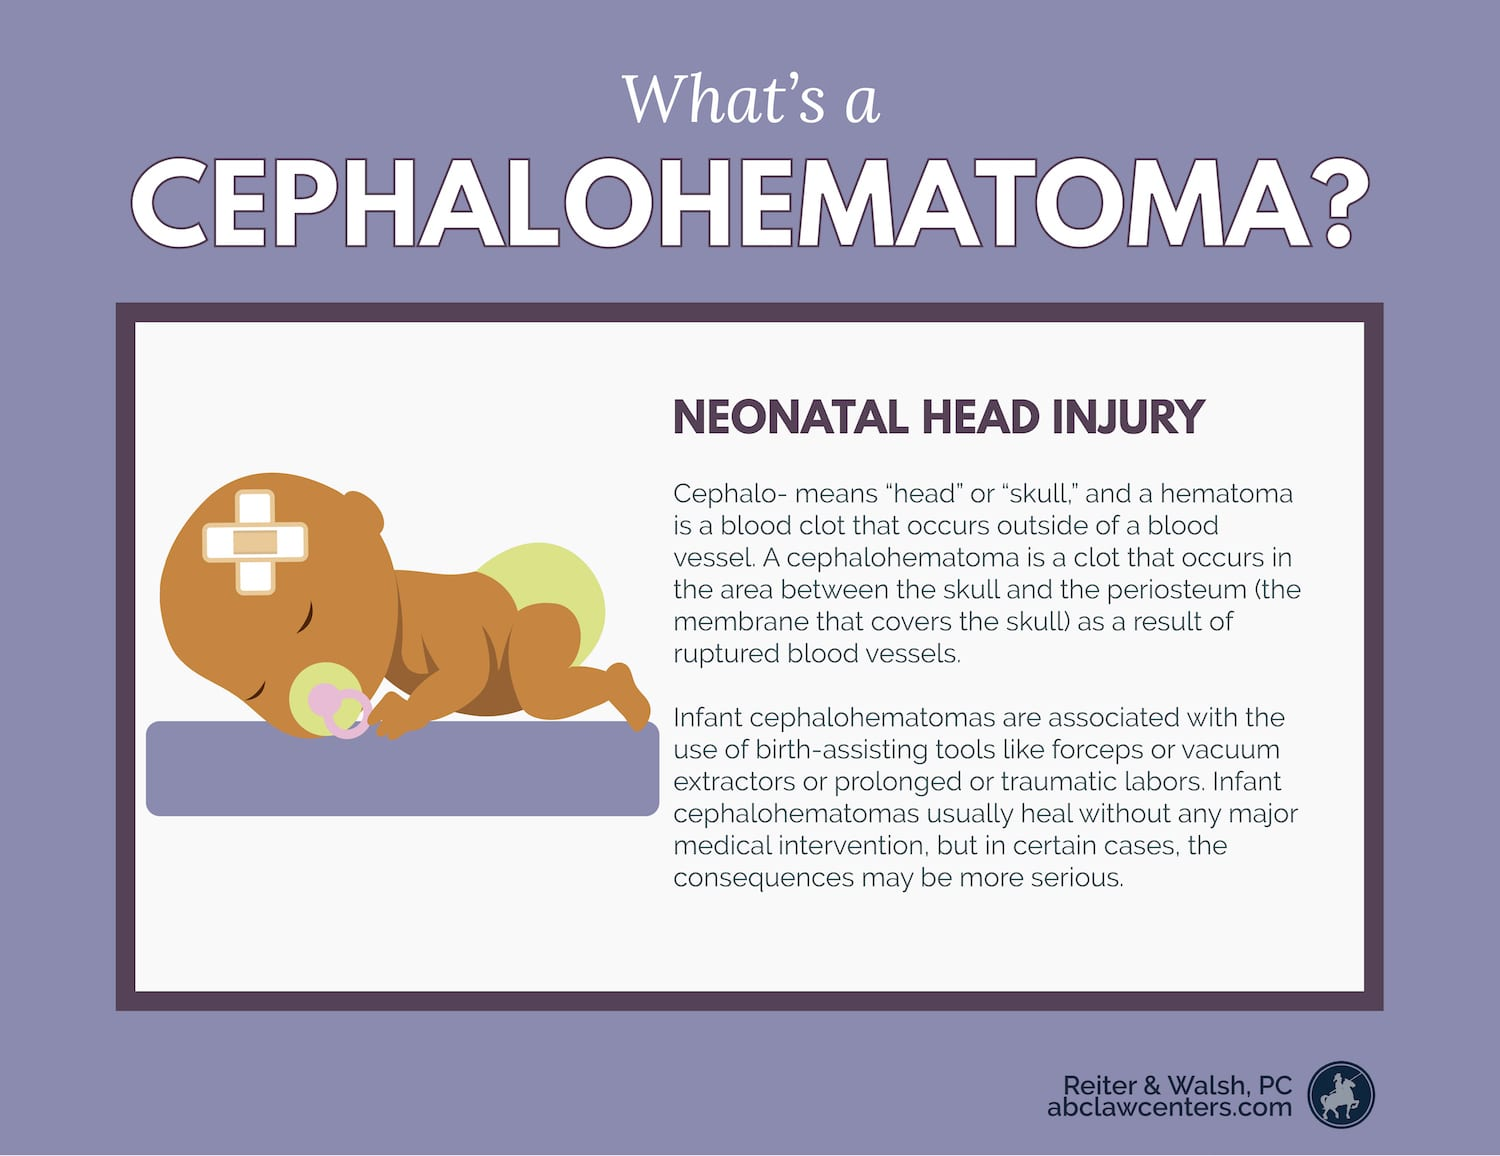 What is a cephalohematoma, and is it dangerous for my baby?